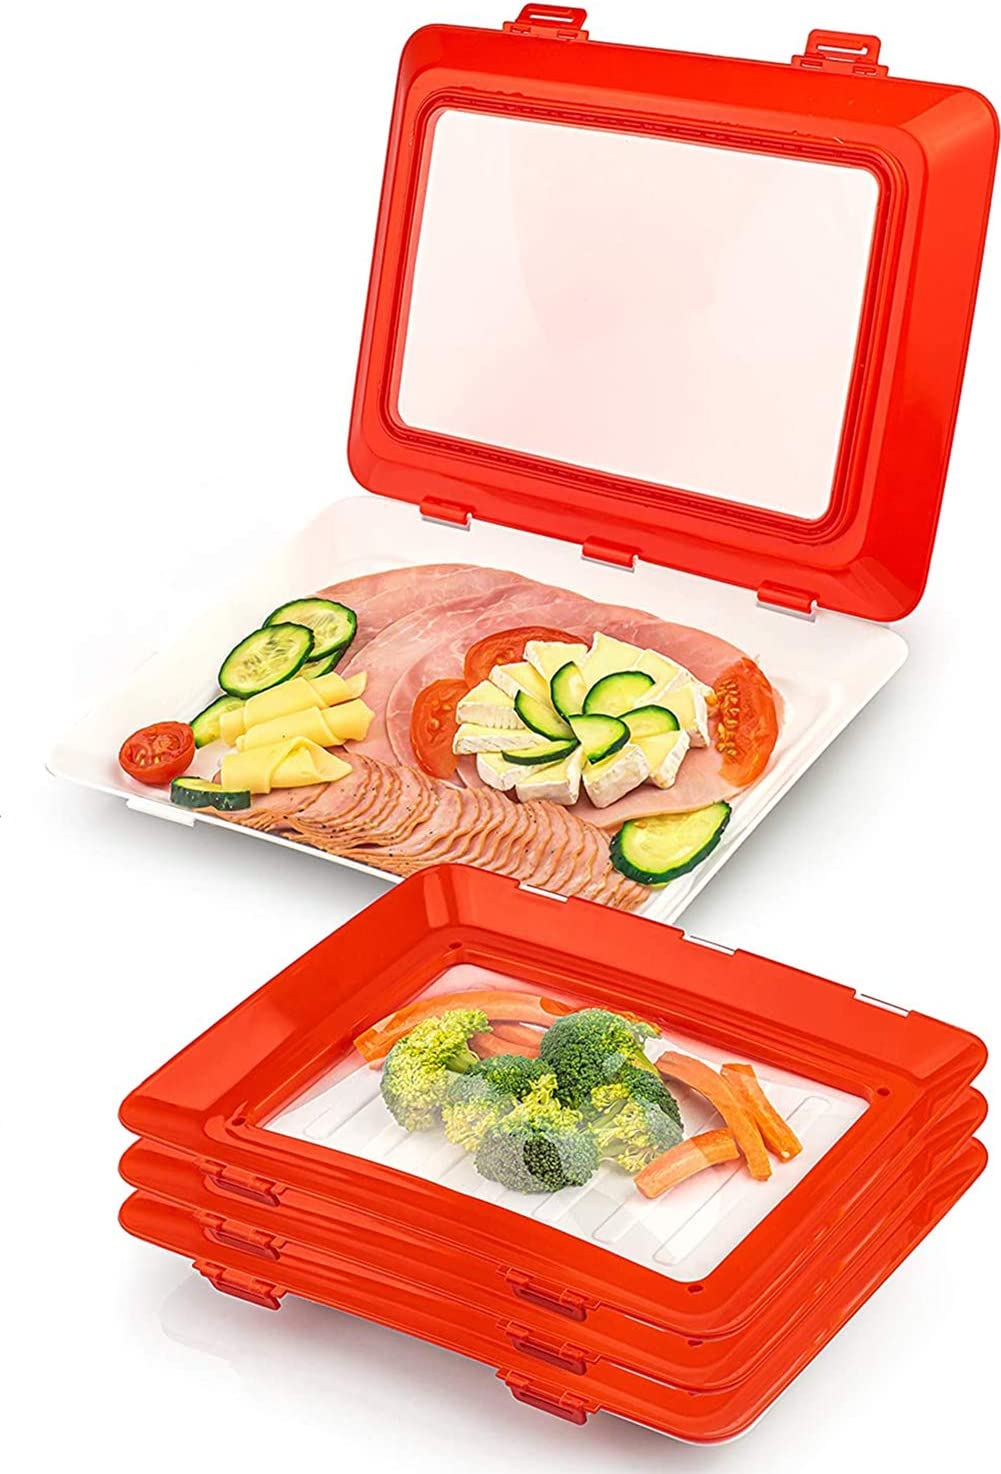 Fox Claw Food Preservation Tray, Stackable and Reusable Food Storage Container with Elastic Lid, Kitchen Refrigerator Storage and Travel & To-Go Food Container Tray [Set of 4] NEW VERSION 2021